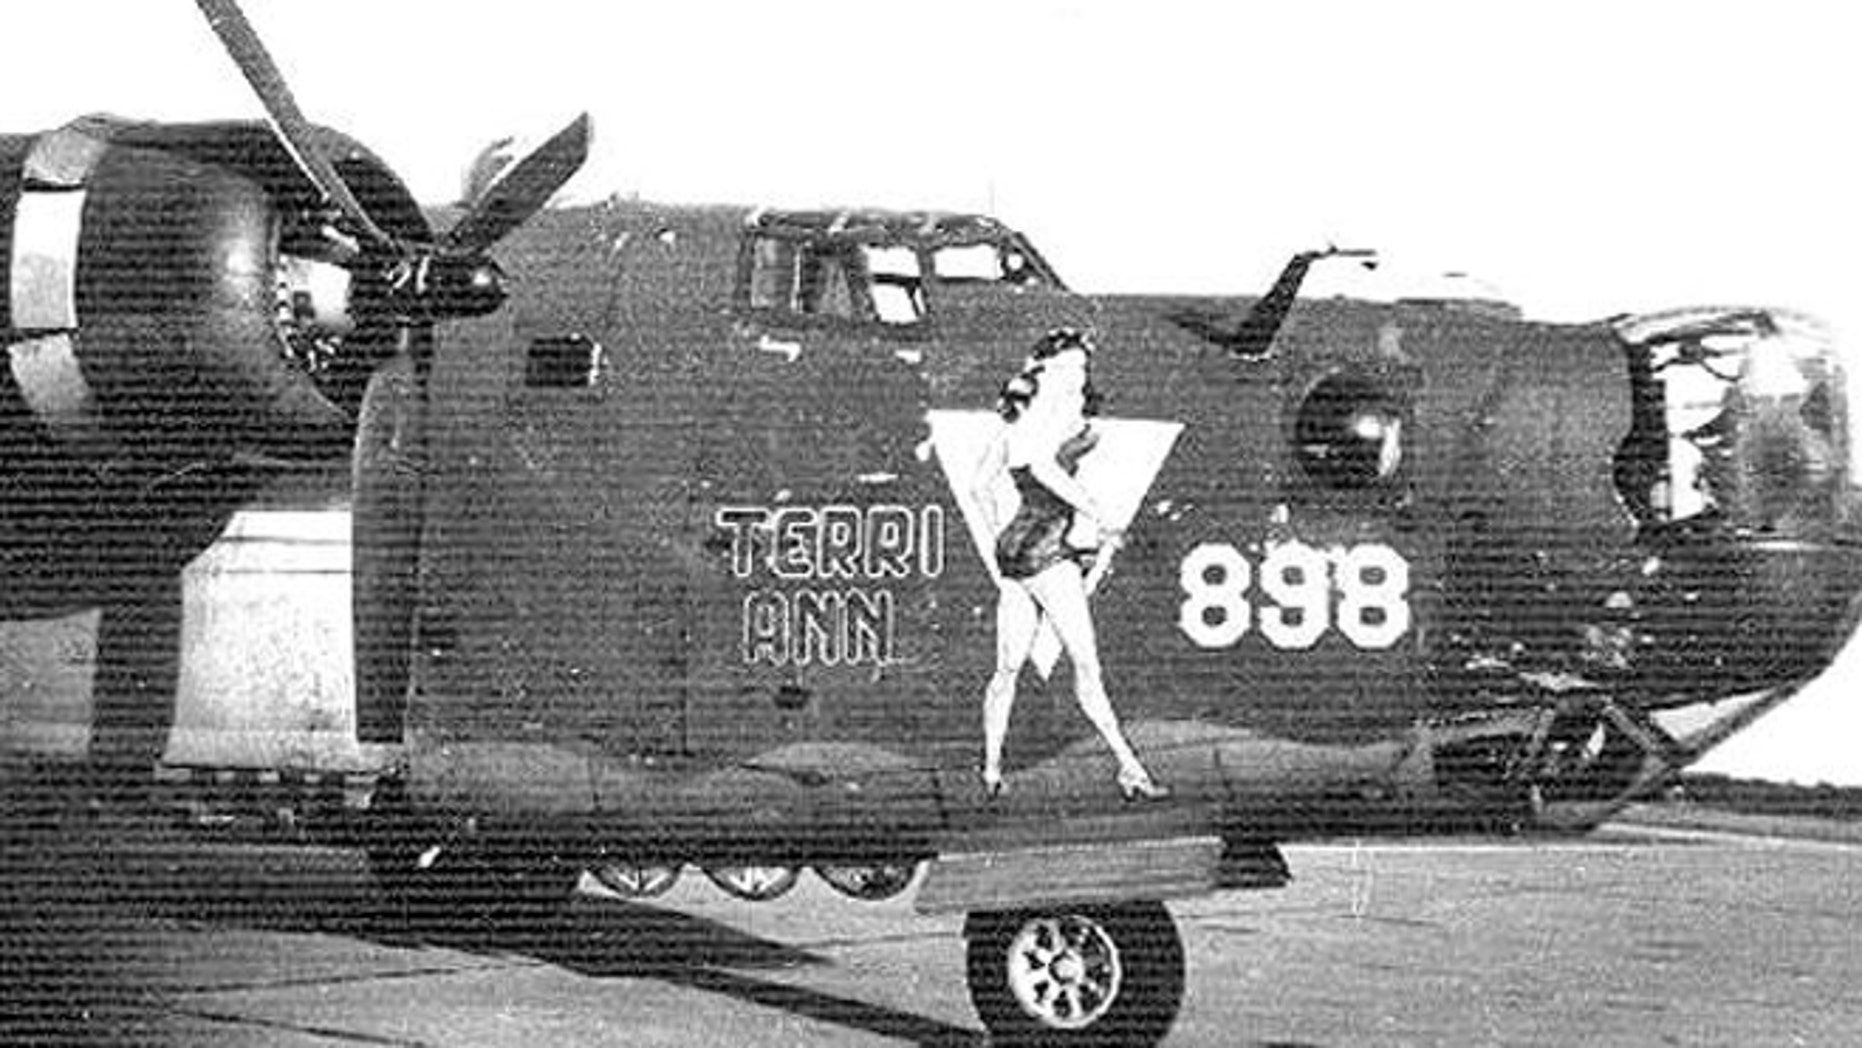 A B-24 used by the 489th Bomb Group during World War II.